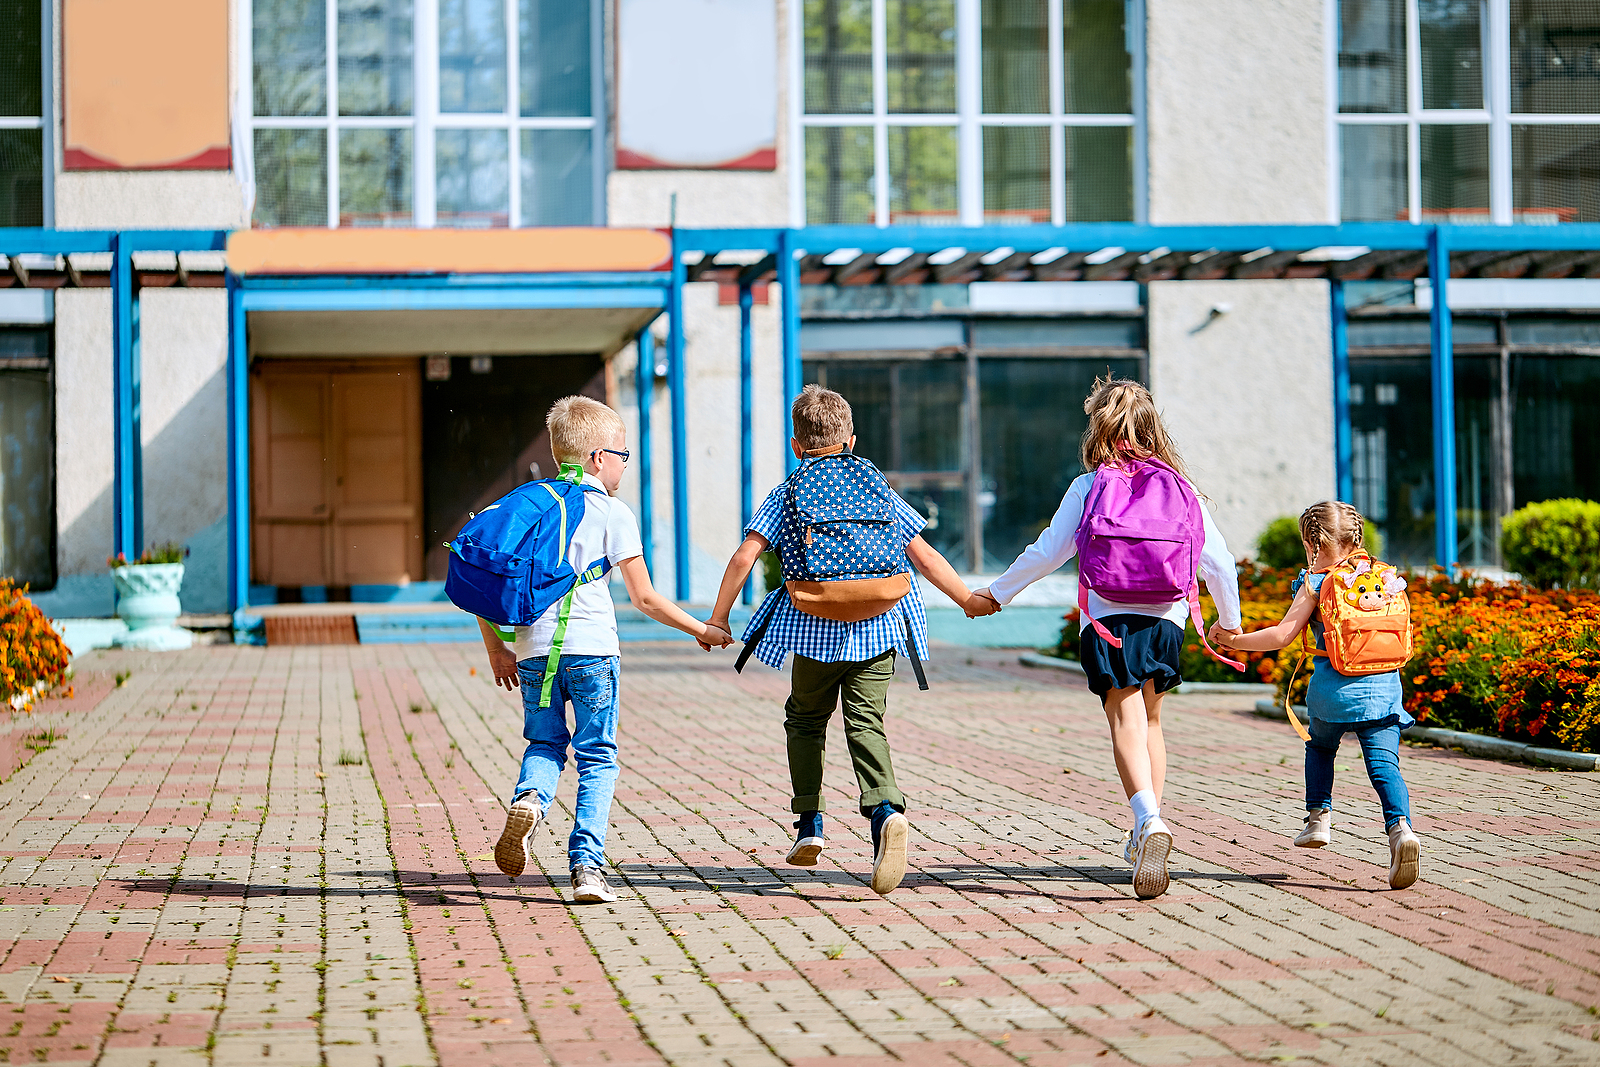 DfE Updates Statutory Safeguarding and Child Protection Guidance